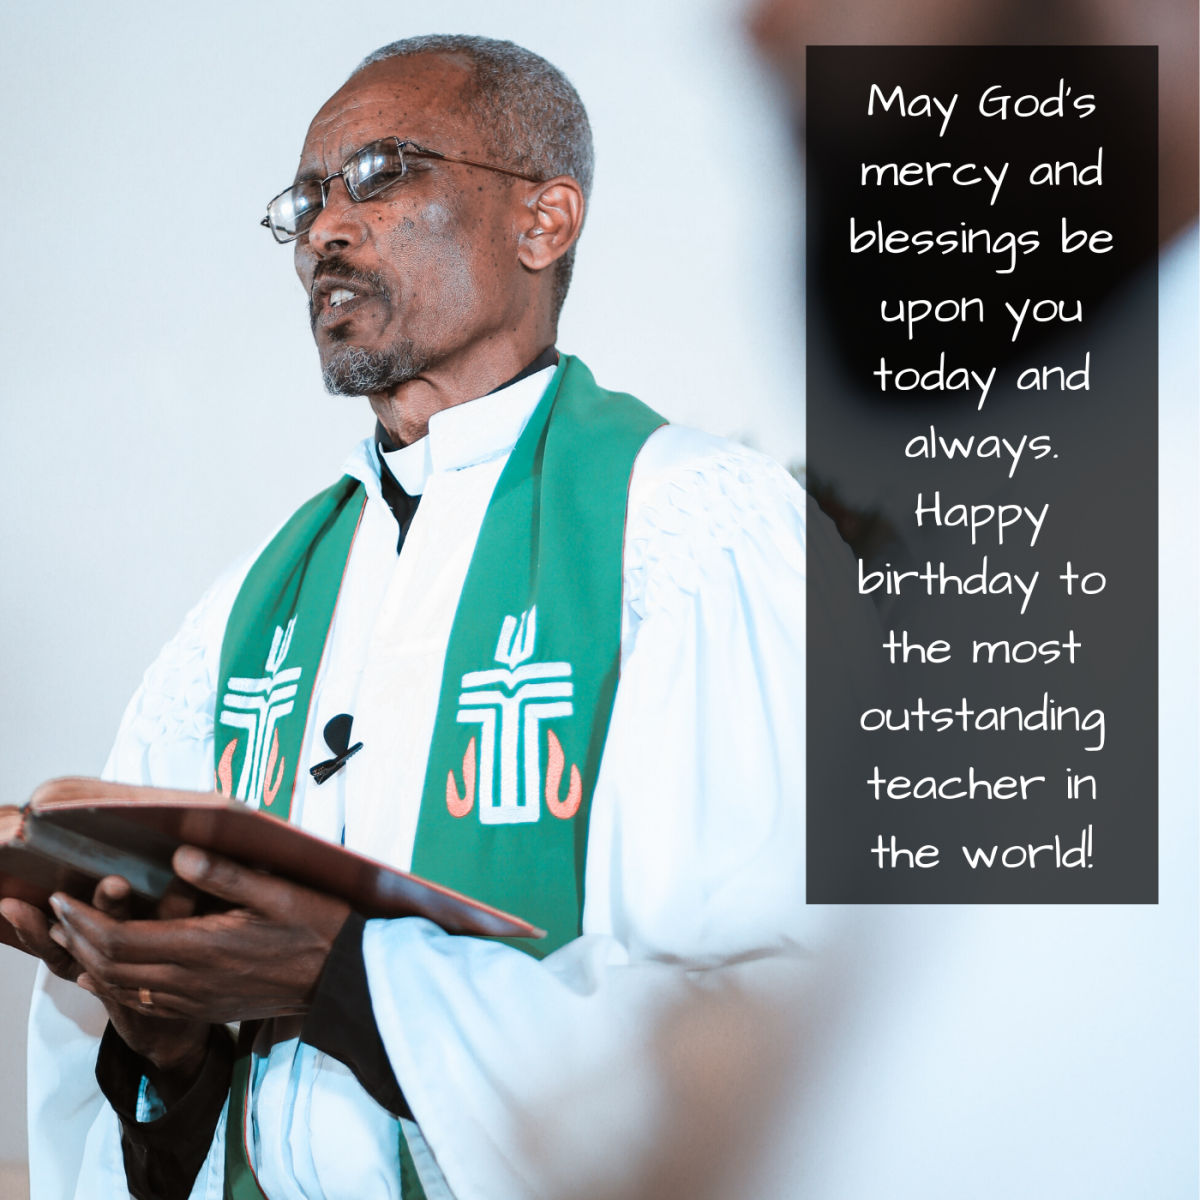 Spiritual leaders are teachers, too! Don't let them go under-appreciated on their special day!